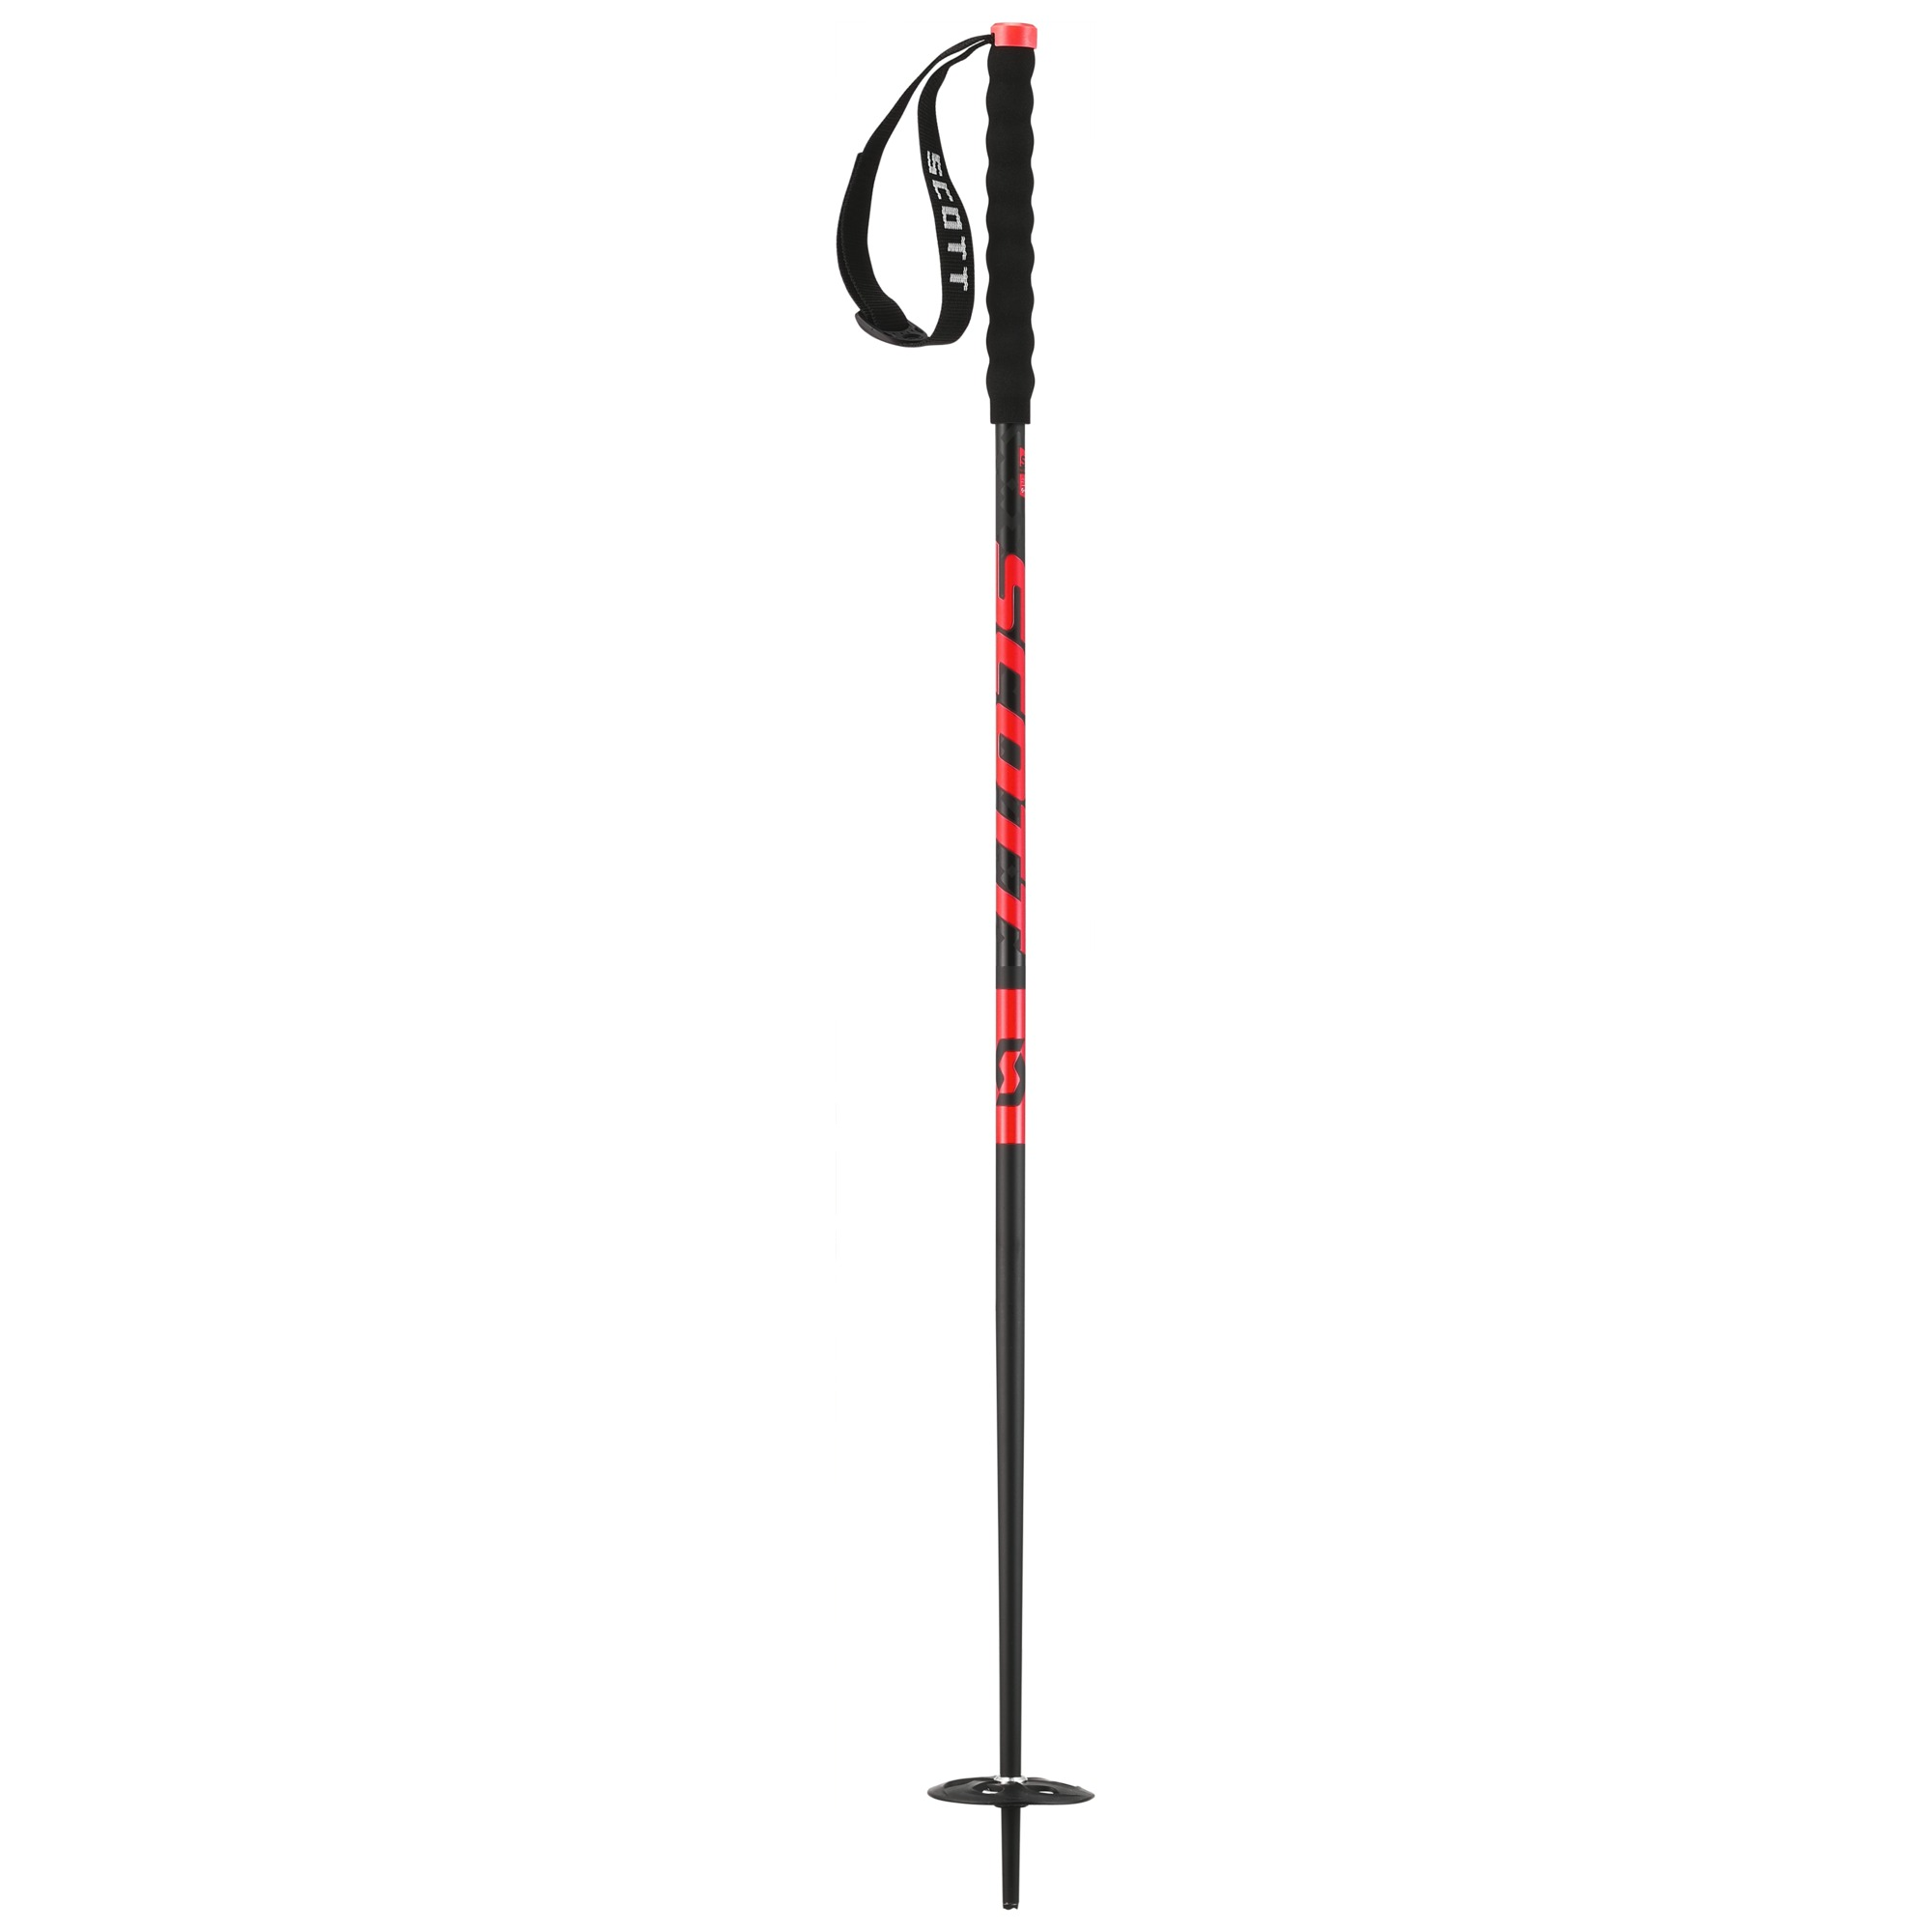 SCOTT Riot + Junior Ski Pole